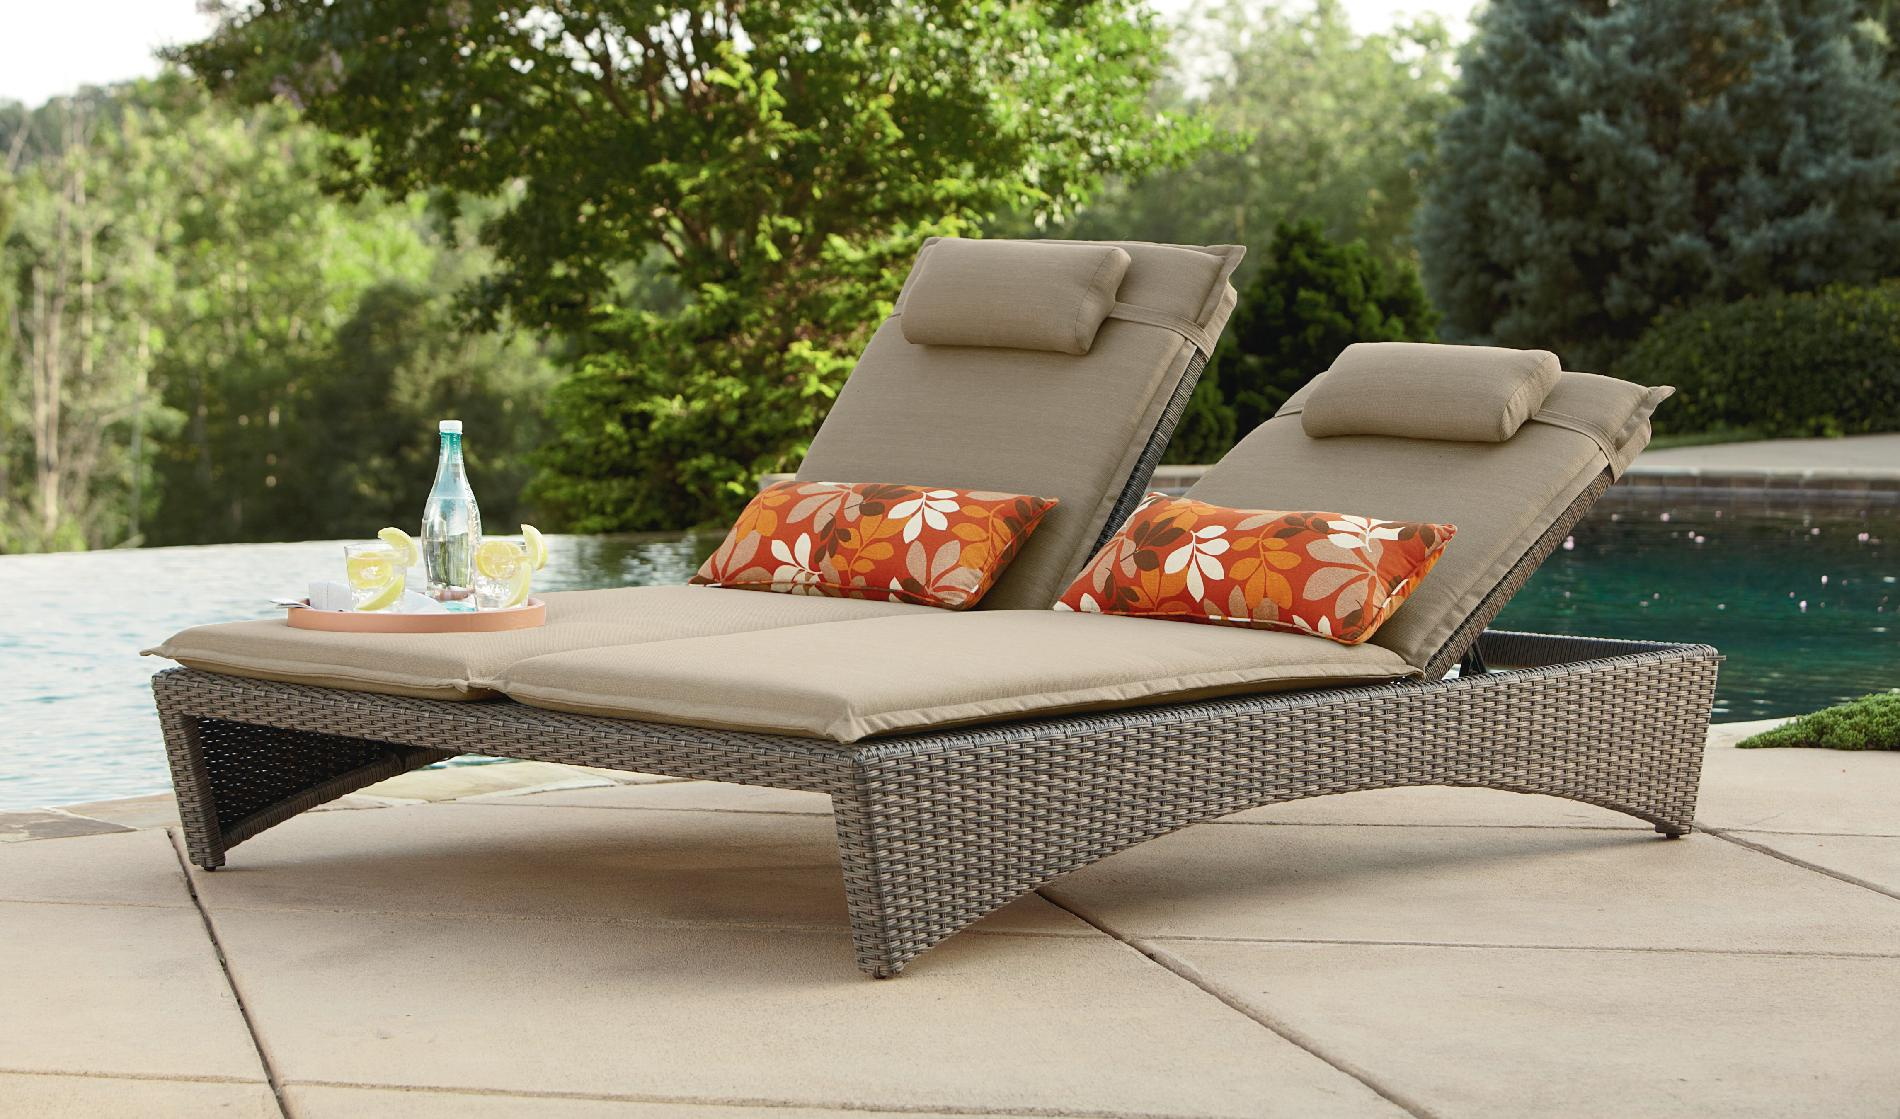 outdoor pool lounge chairs upside down chair patio chaise as the must have furniture in your